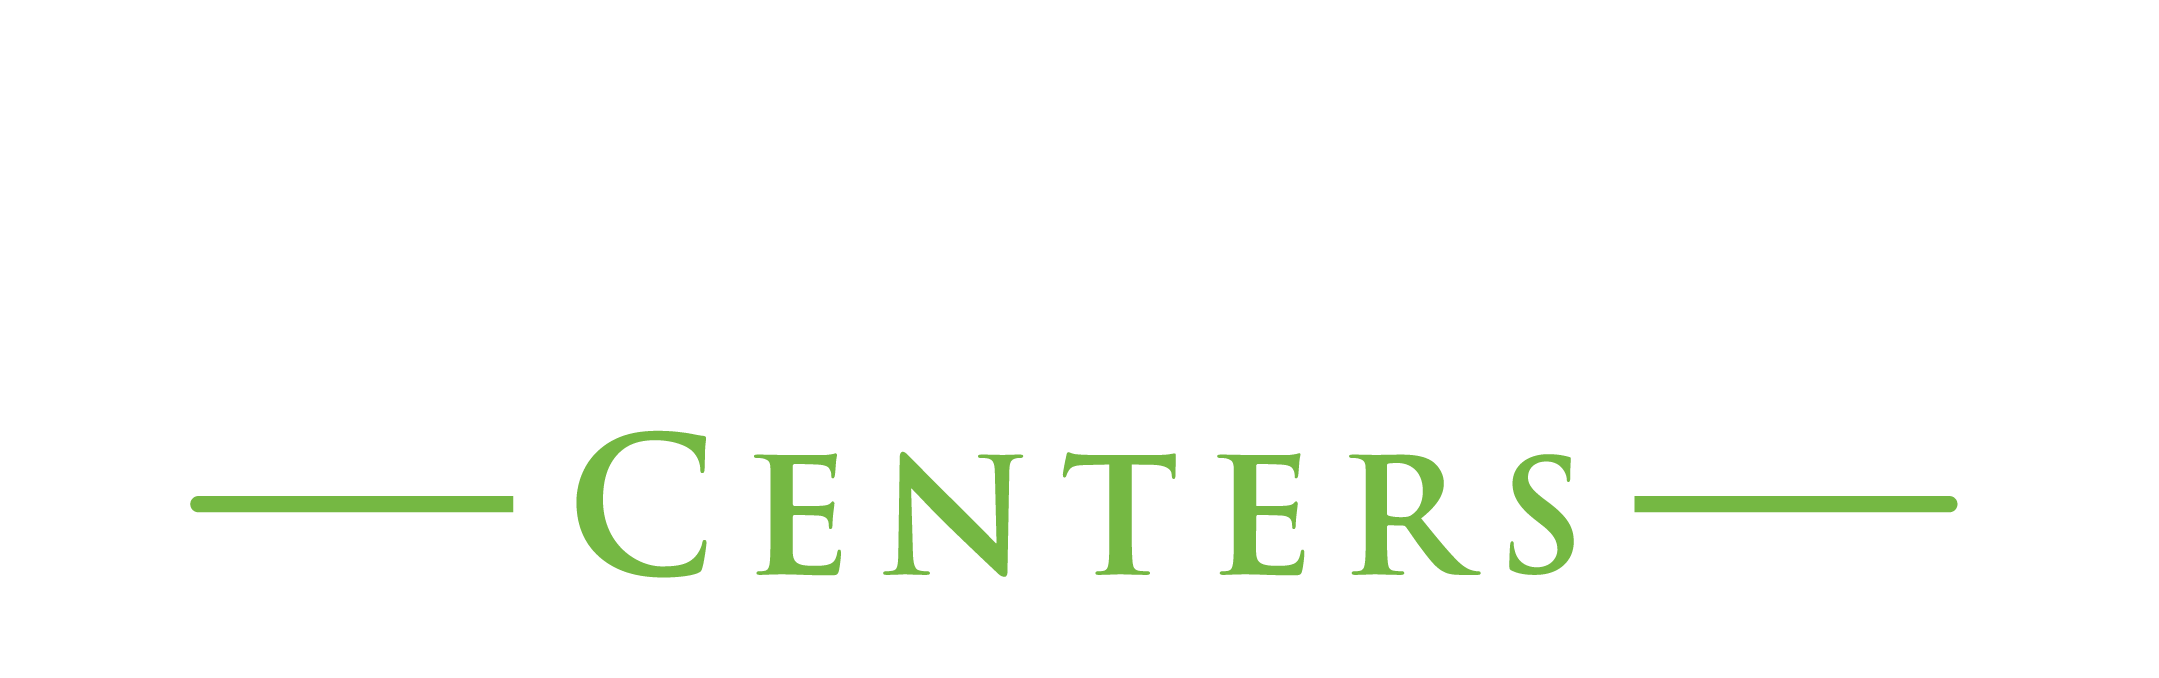 Lyme Disease Protocol | Cold Laser Therapy | Lyme Laser Centers Of